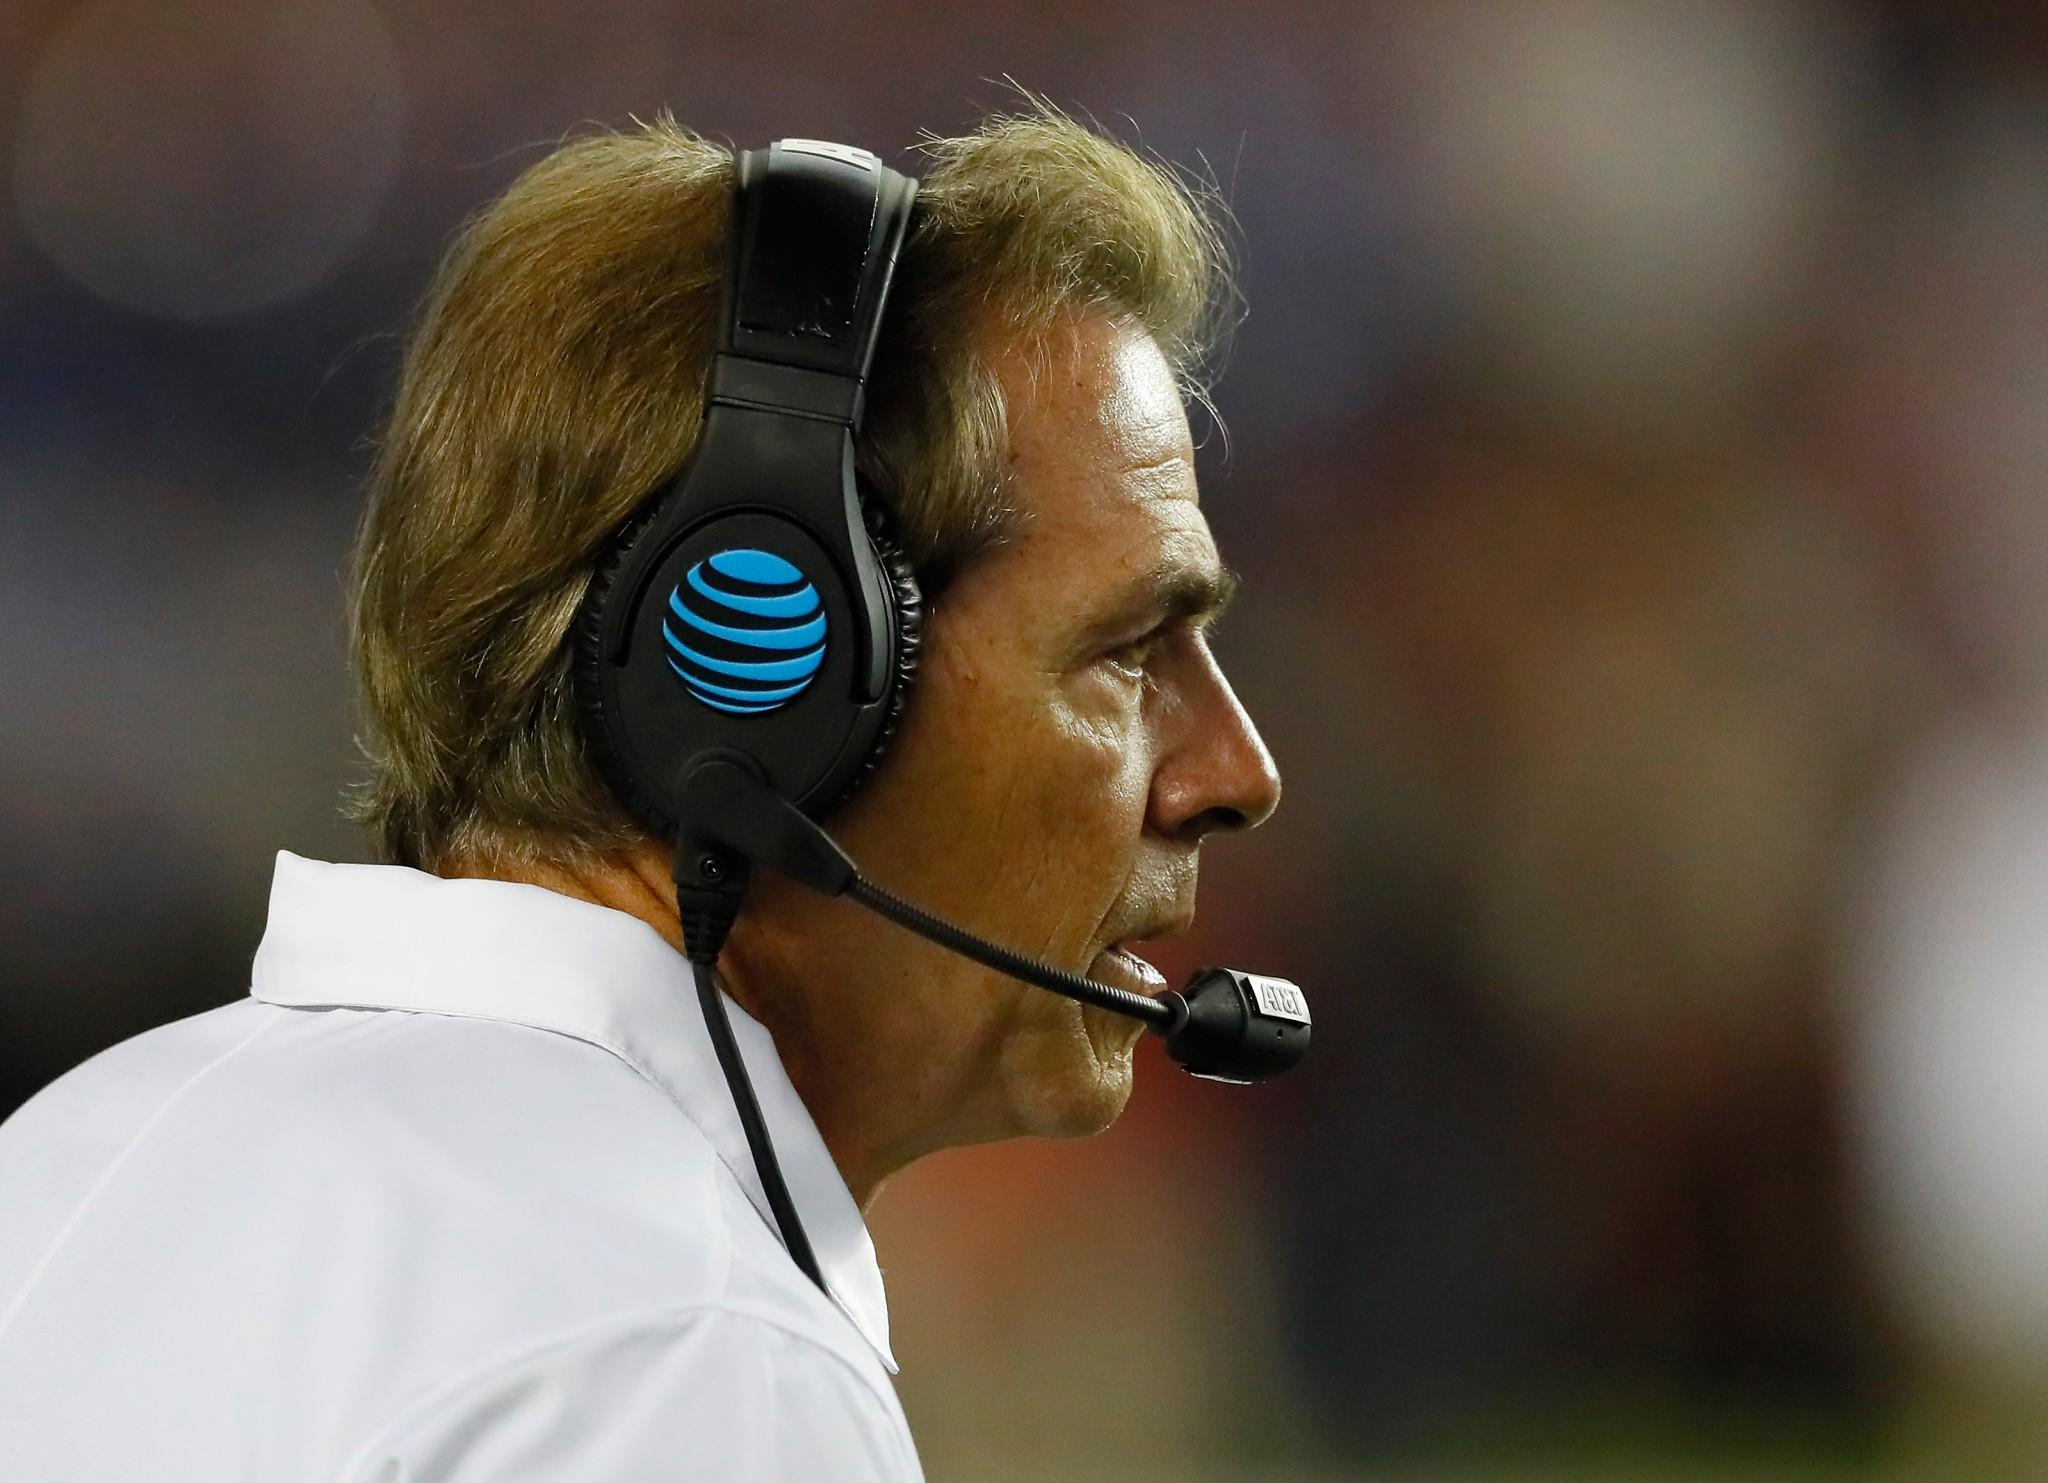 Nick Saban did it again And in style The Alabama Crimson Tide head coach led his squad to victory over the Georgia Bulldogs in a thrilling overtime